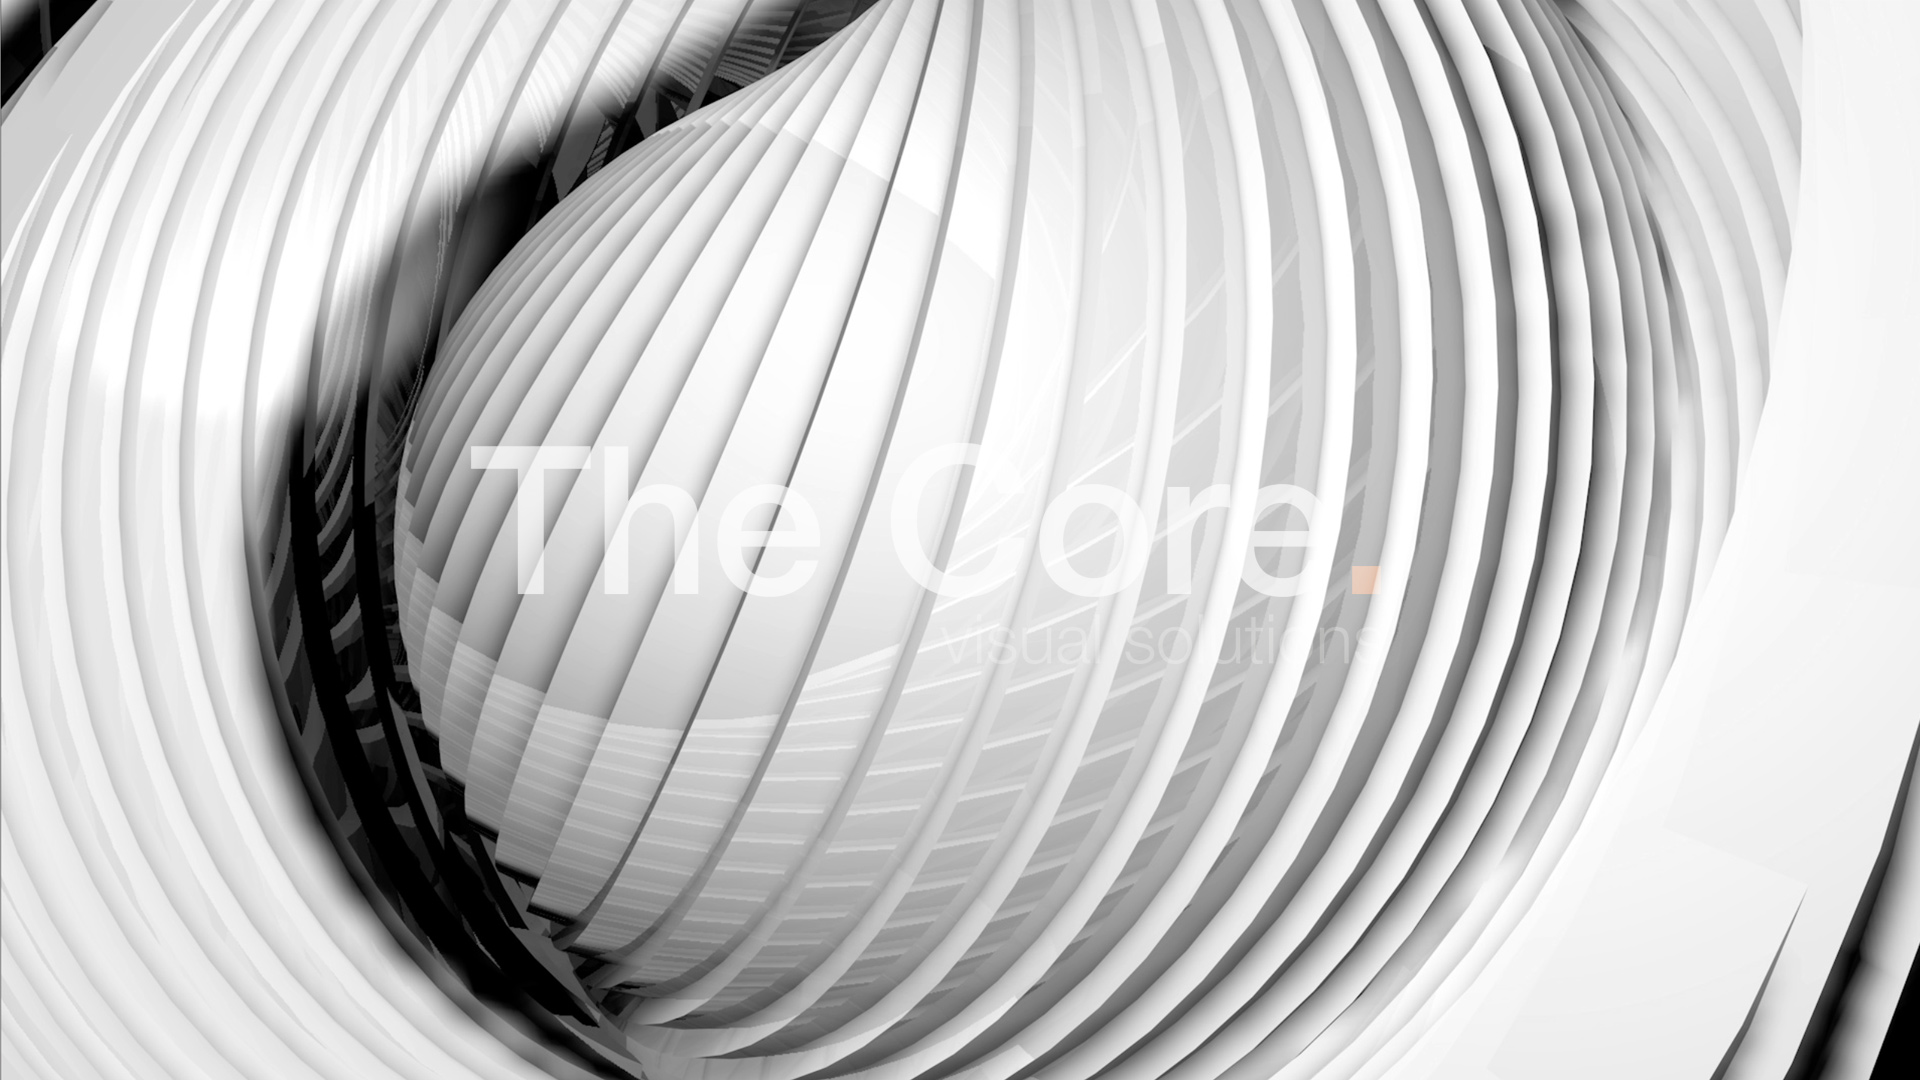 00114-ROTORSHELL-CLOSEUP-WHITE-1-STILL-by-The-Core